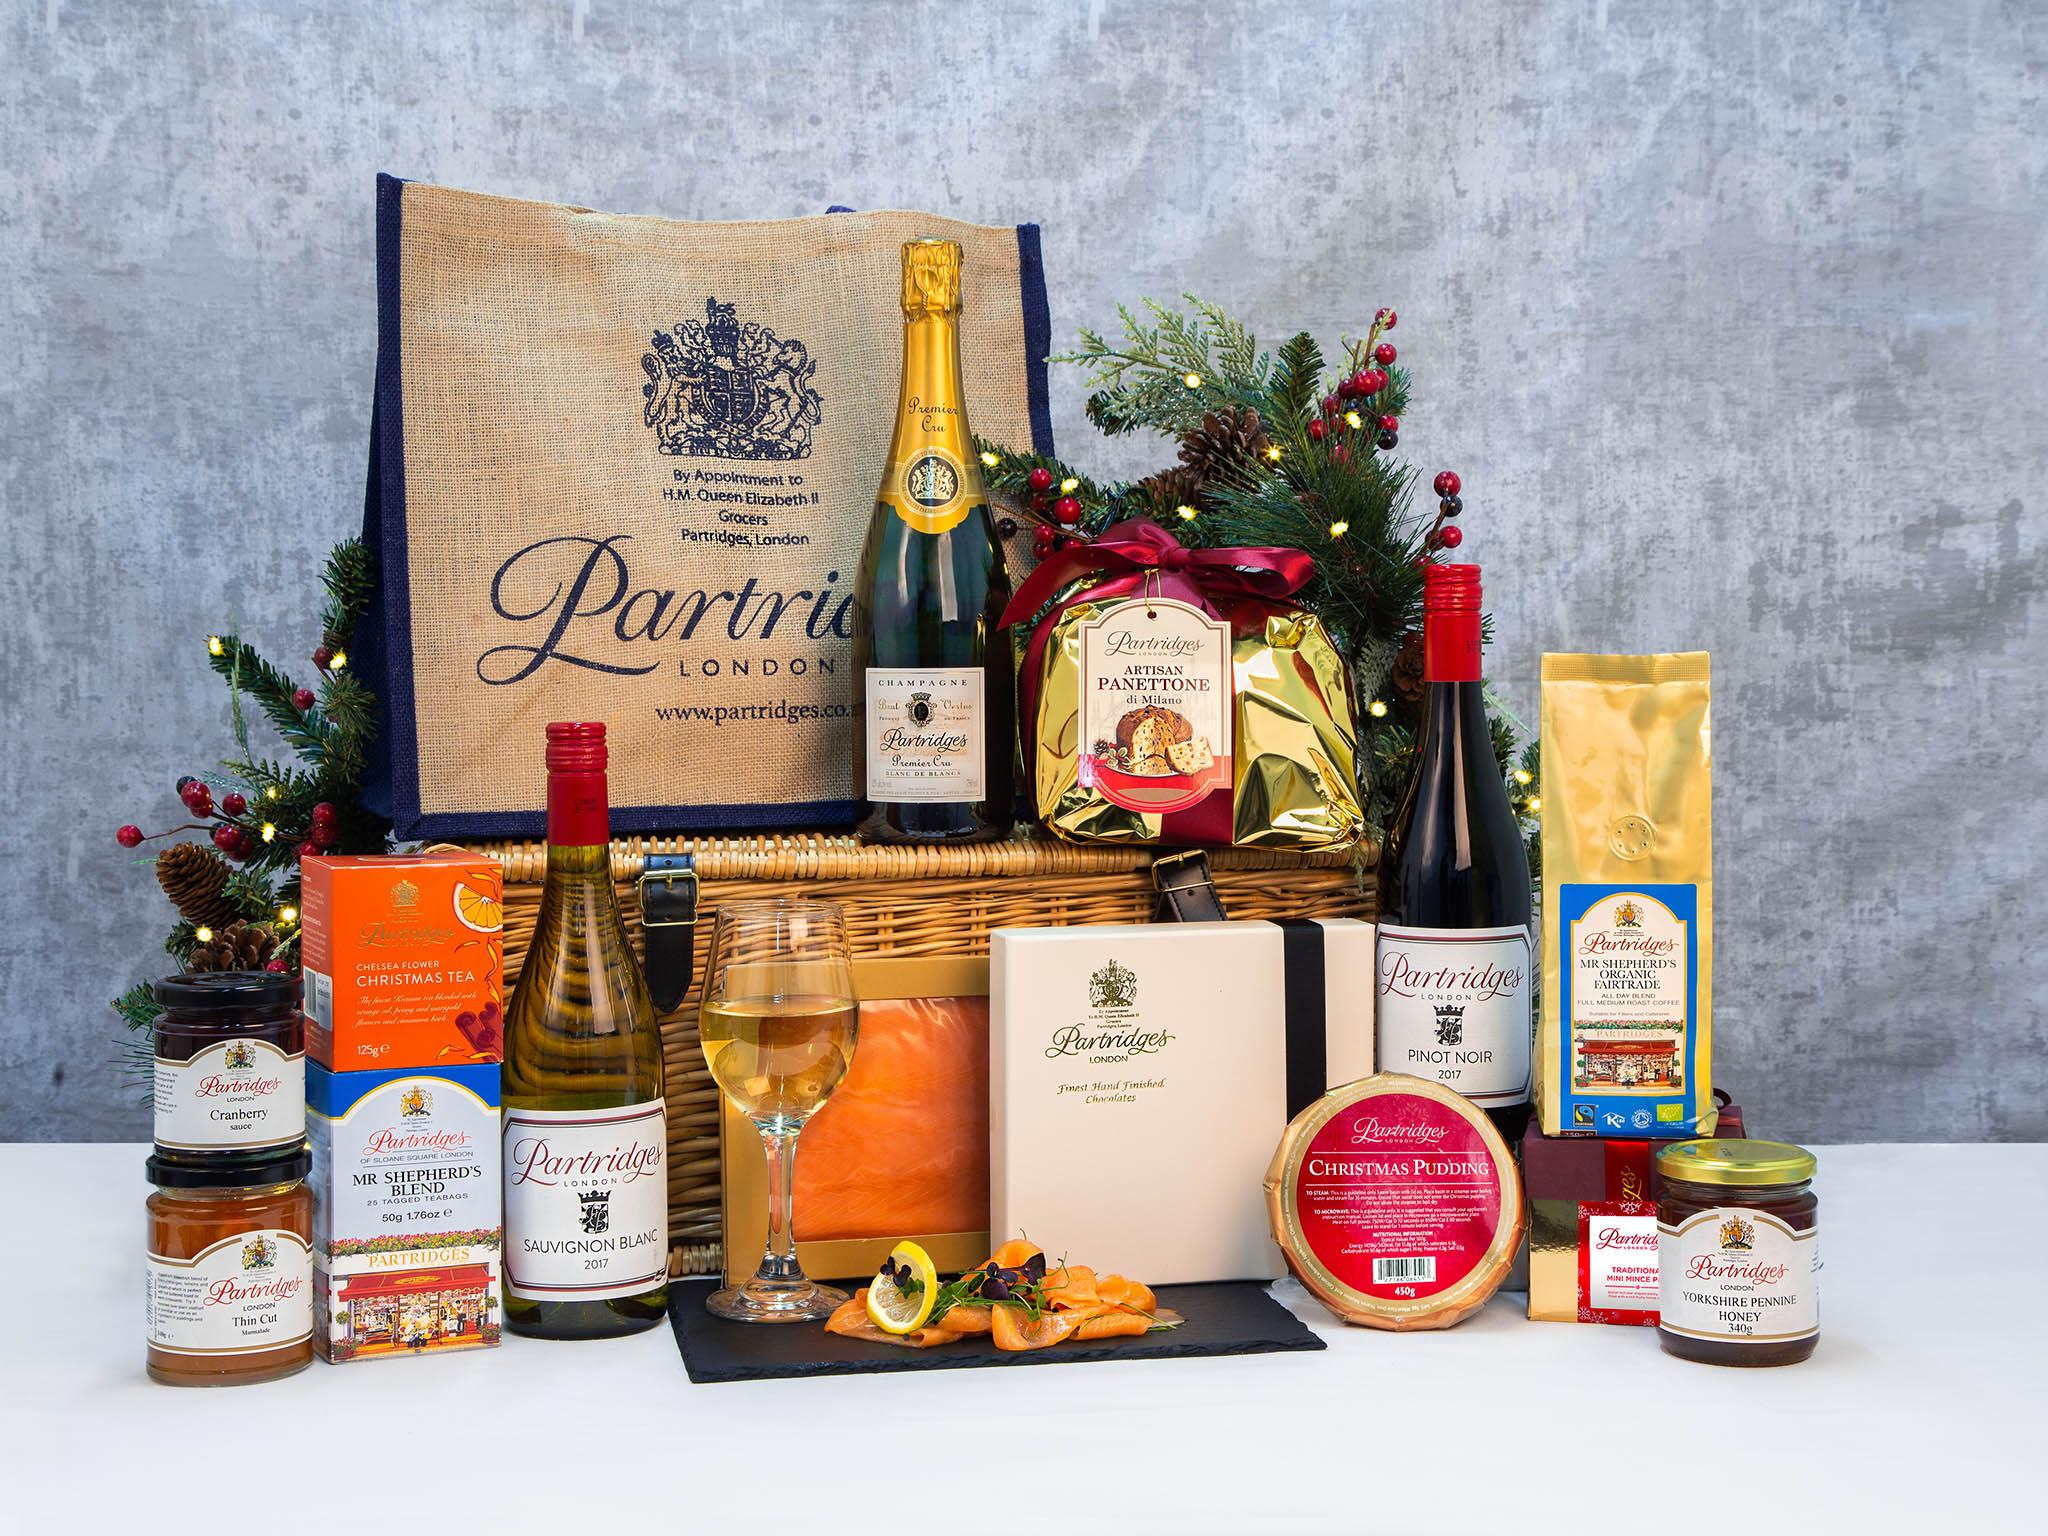 Name day wishes-Anti-alcohol basket